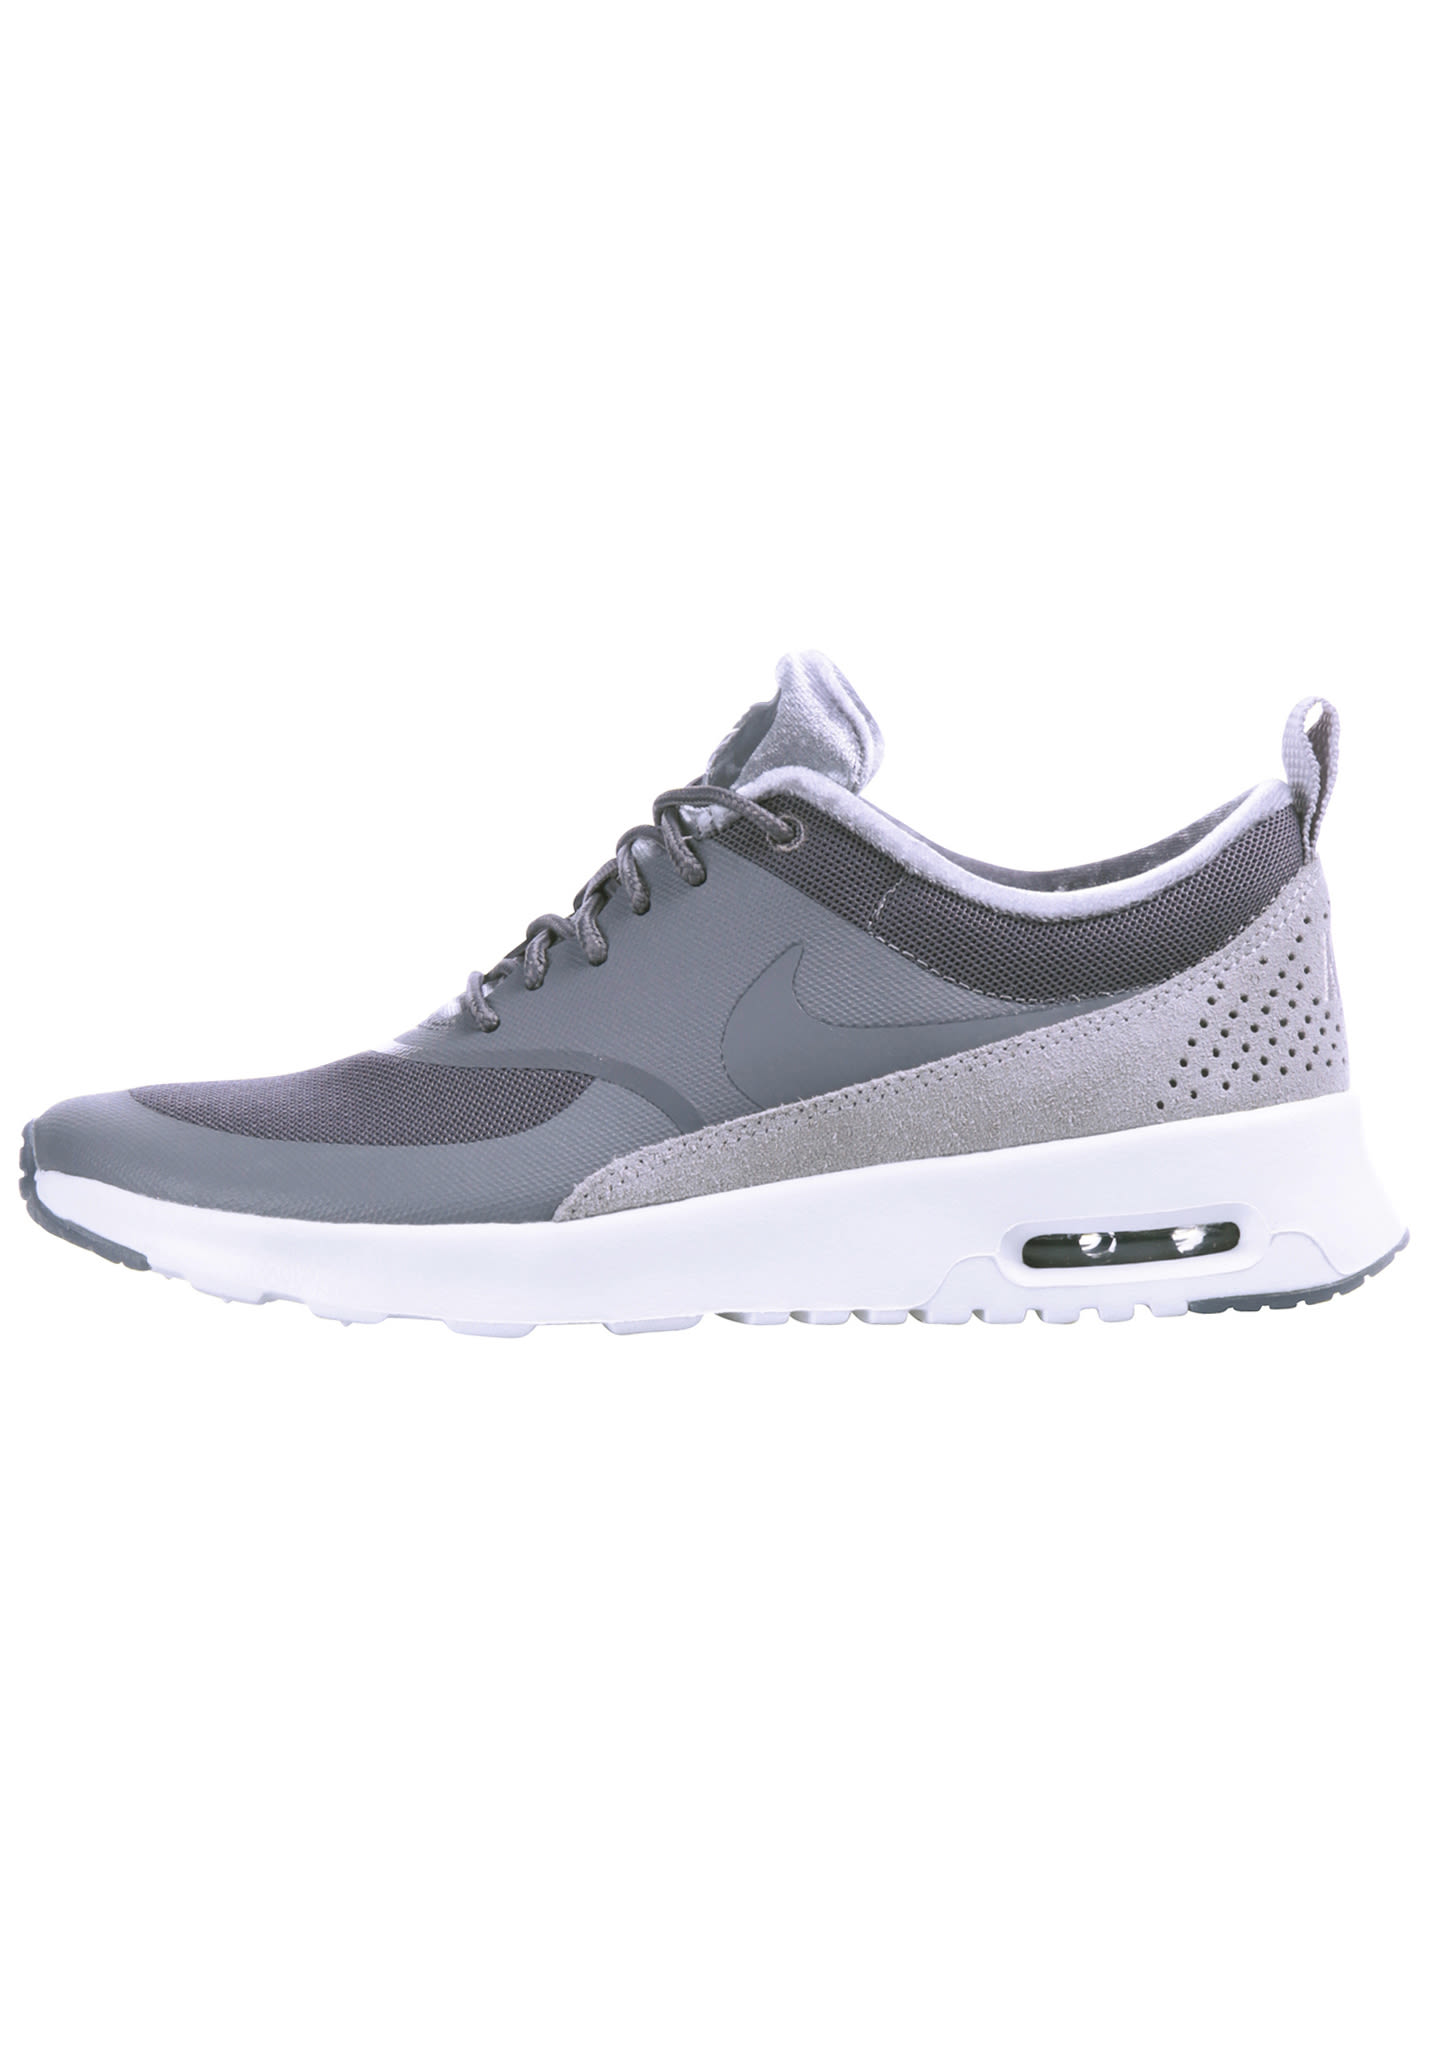 new styles 63e3a 10a17 NIKE Air Max  PLANET SPORTS tienda online